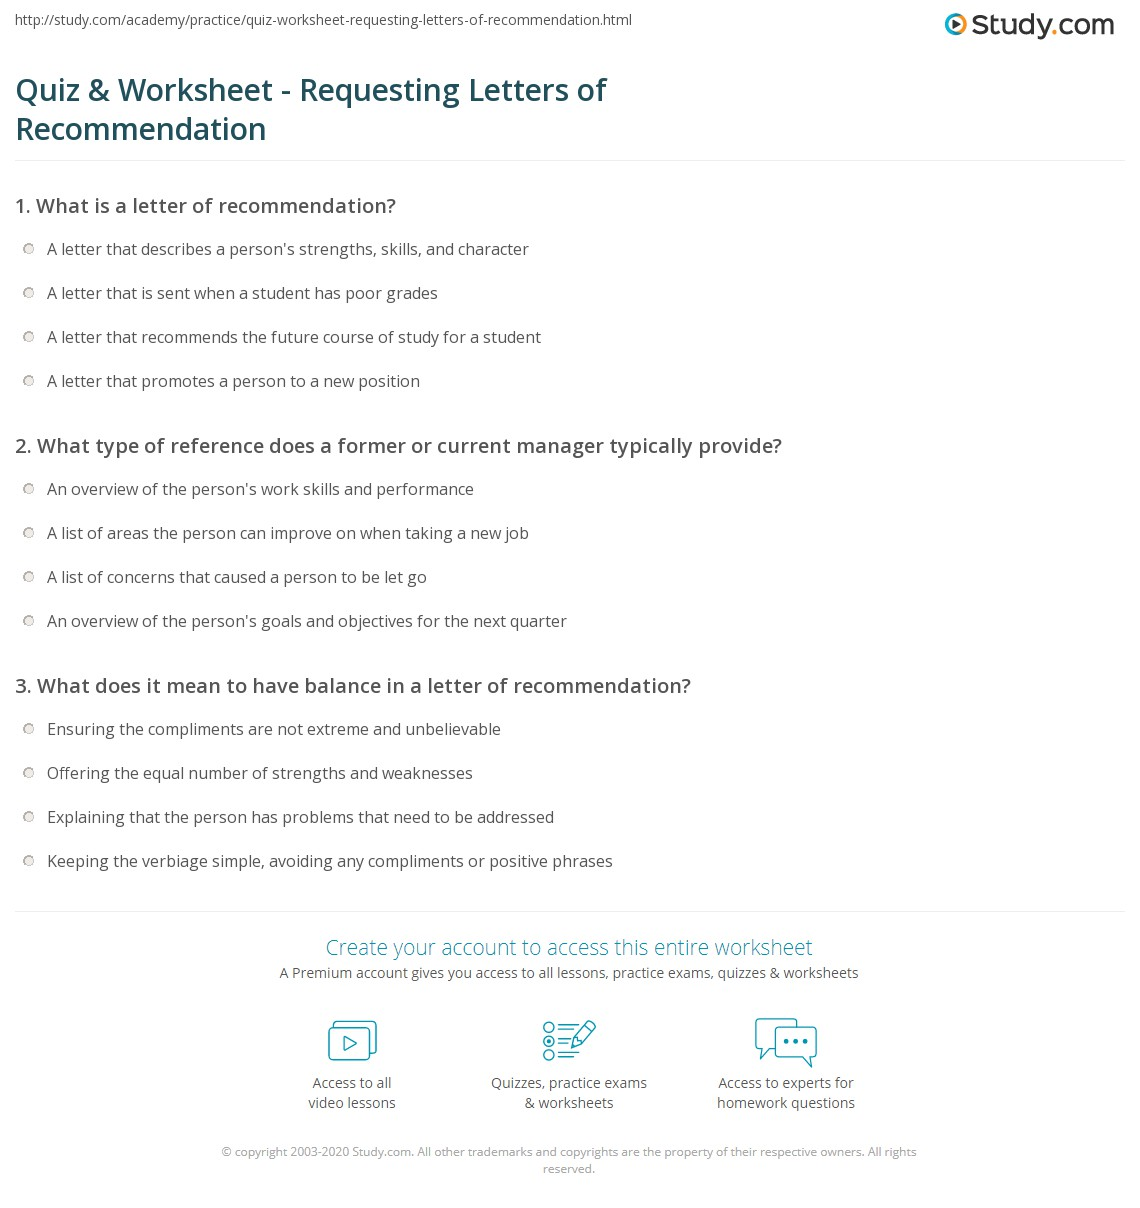 Quiz Worksheet Requesting Letters Of Recommendation Study